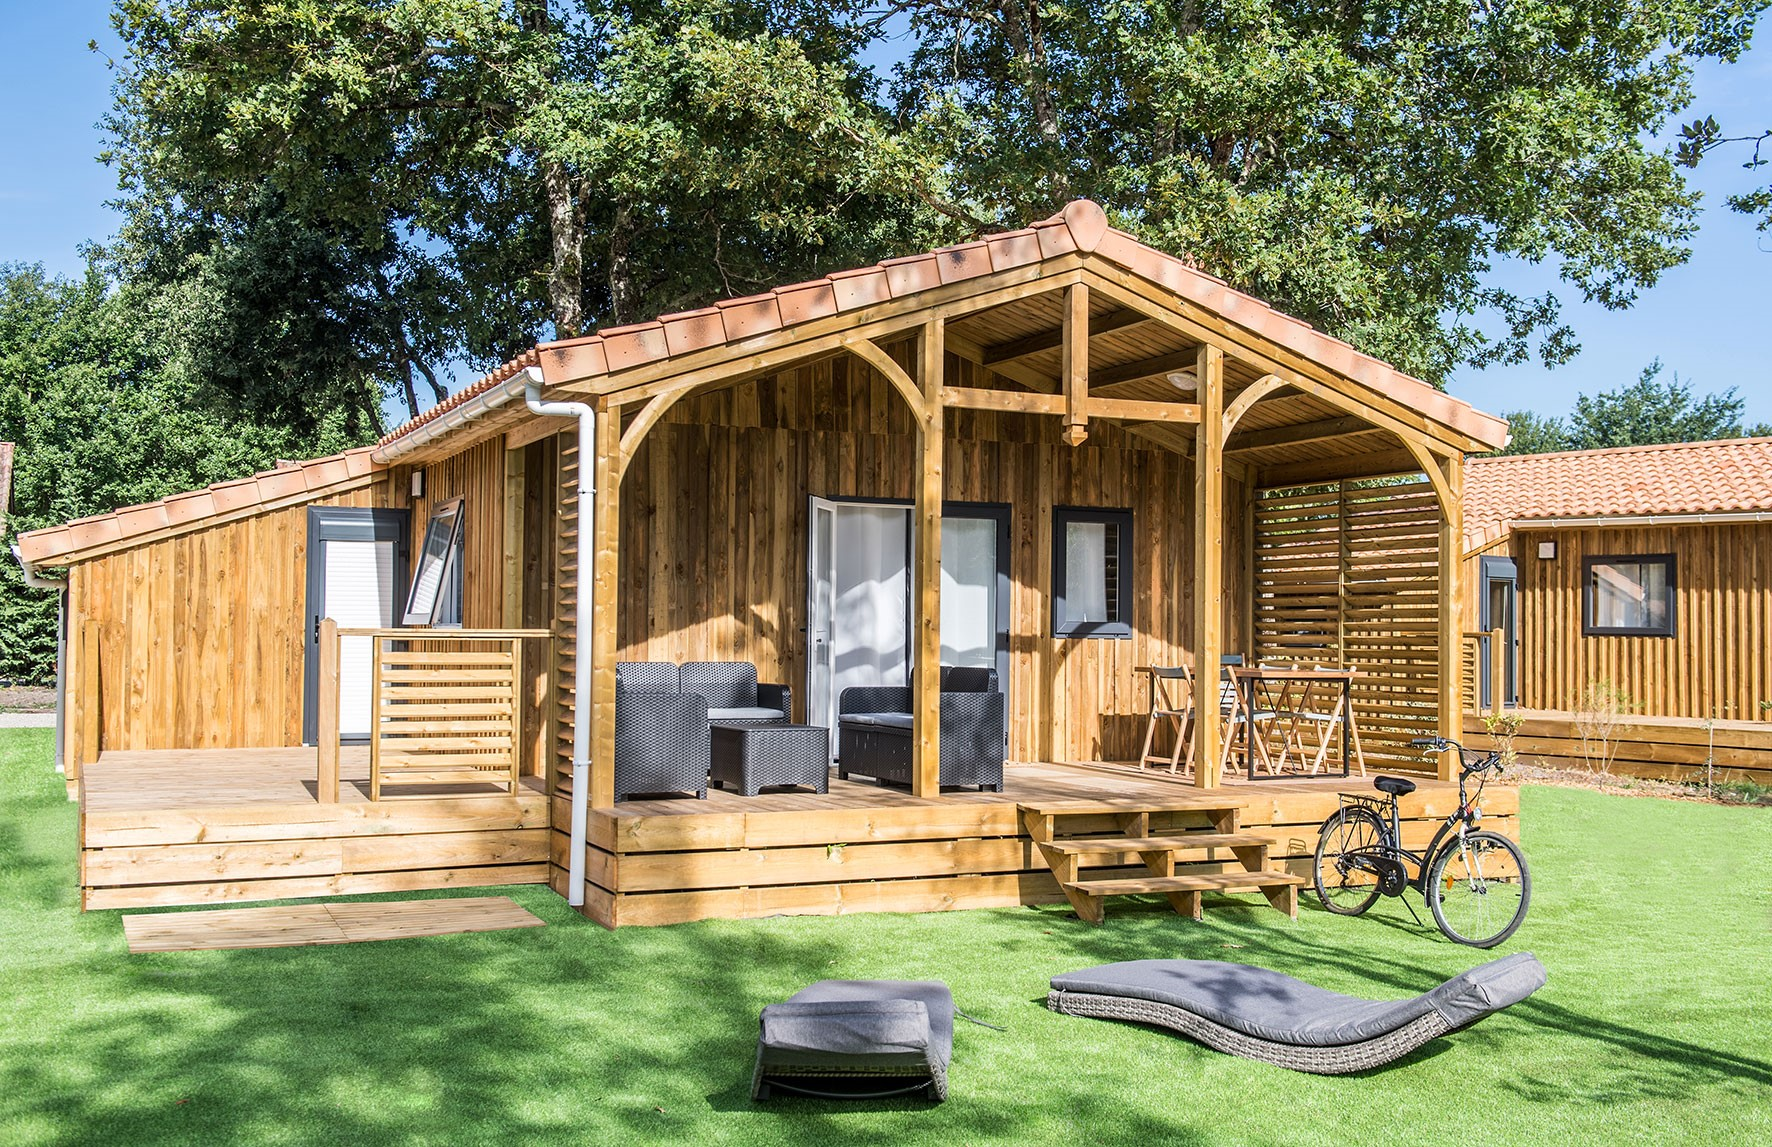 Prix Terrasse Mobil Home Achat Chalet Bassin D Arcachon Camping La Forge